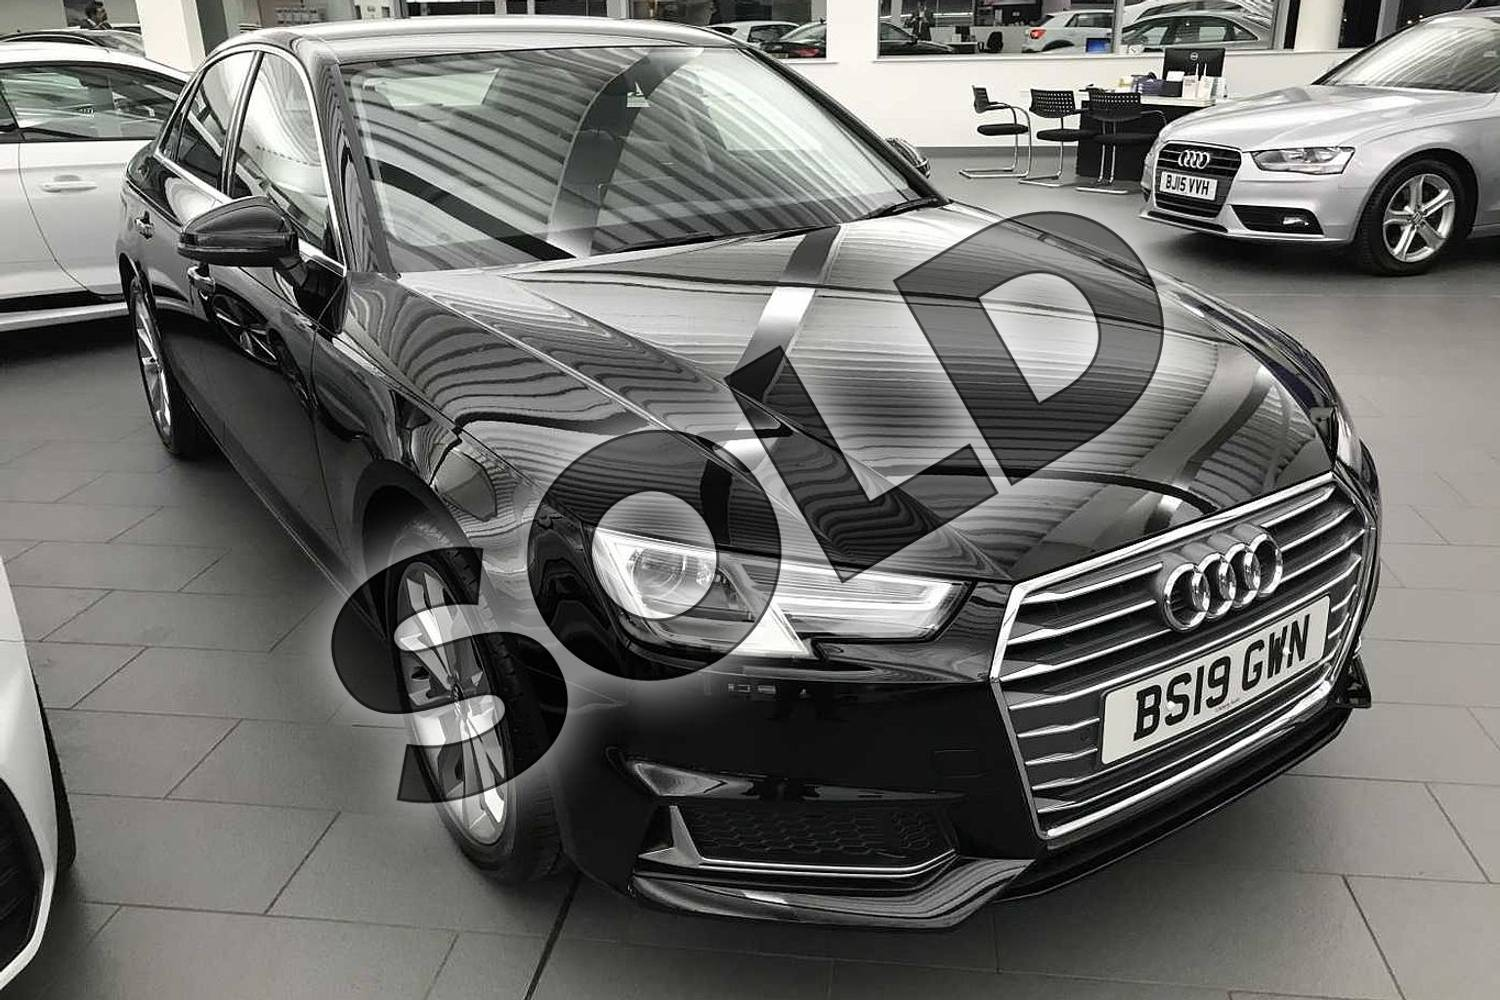 2019 Audi A4 Diesel Saloon 35 TDI Sport 4dr S Tronic in Brilliant Black at Birmingham Audi